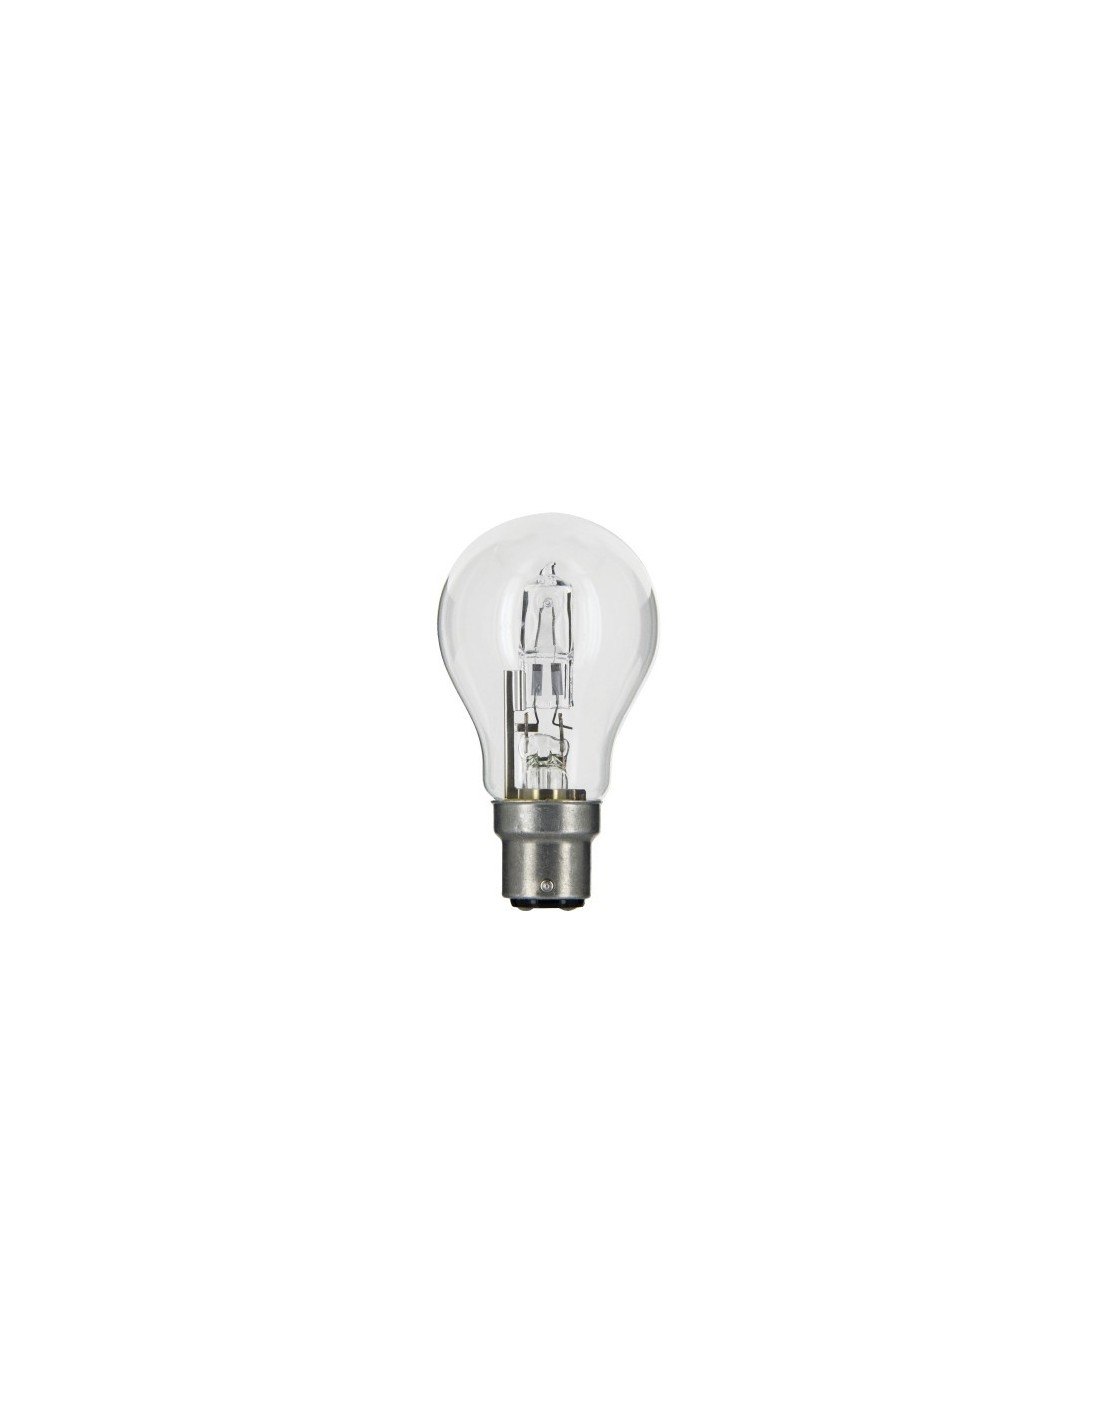 Lampe Eco Lampe Eco Halogen Standard B22 Ls Blister 53 835 1 Brico